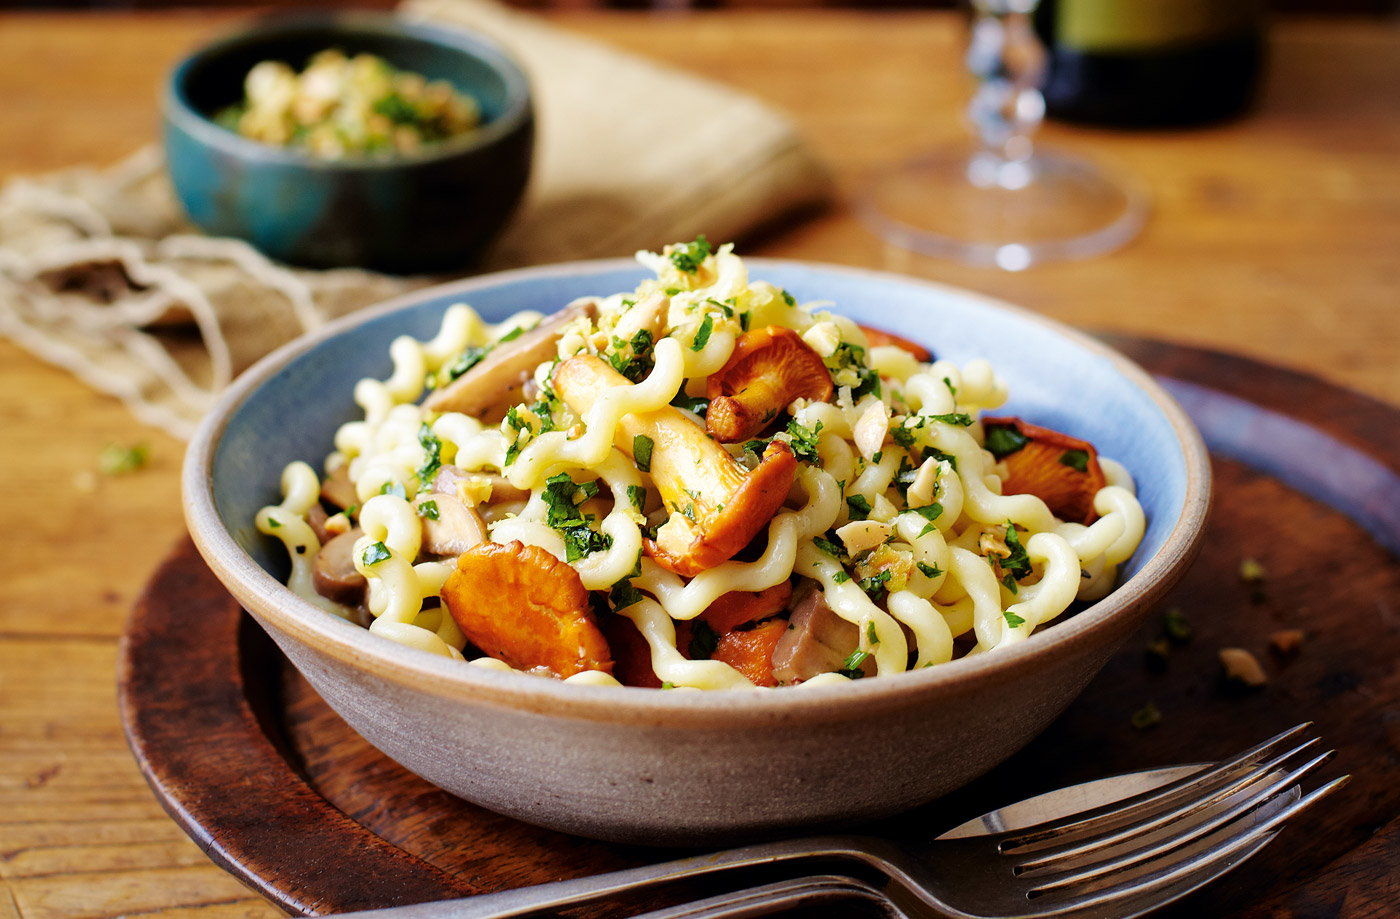 Tesco Finest fusilli with wild mushrooms and almond gremolata